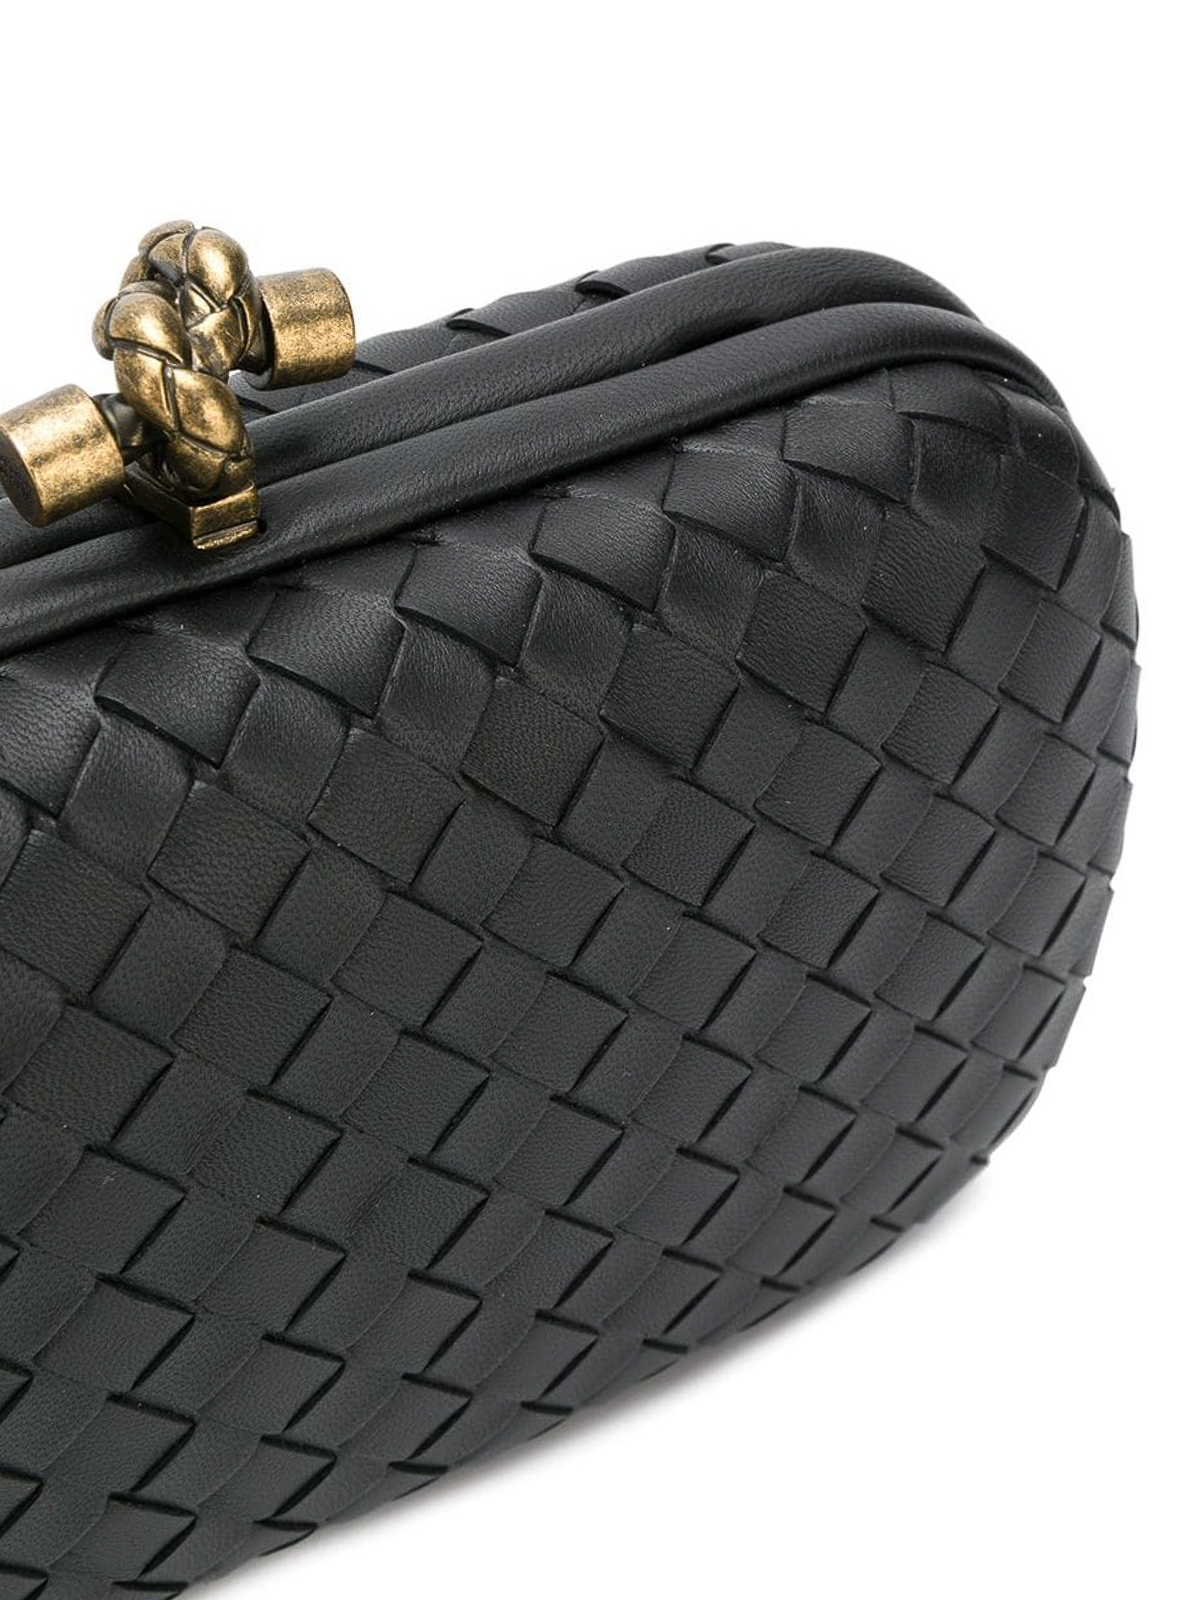 591b407cf359 iKRIX BOTTEGA VENETA  clutches - Chain Knot black woven lambskin clutch